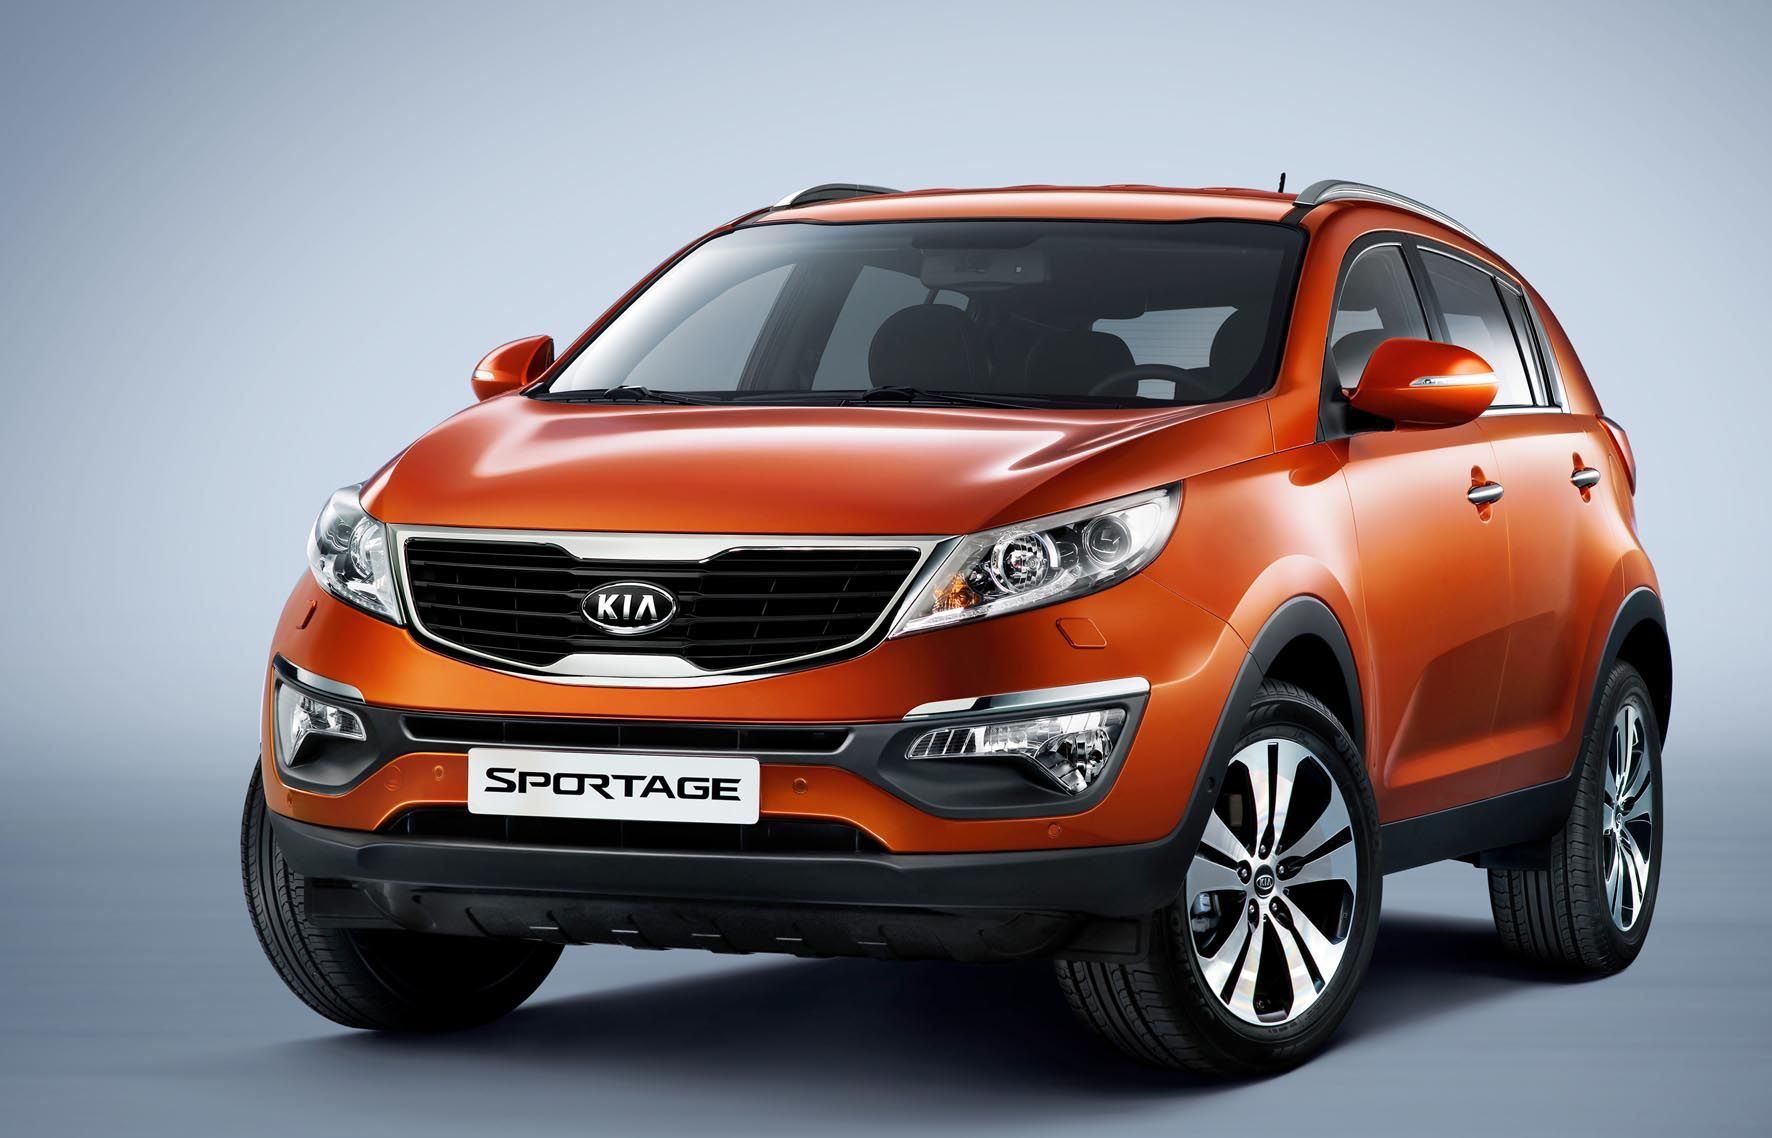 Kia sportage one of the most popular cars of